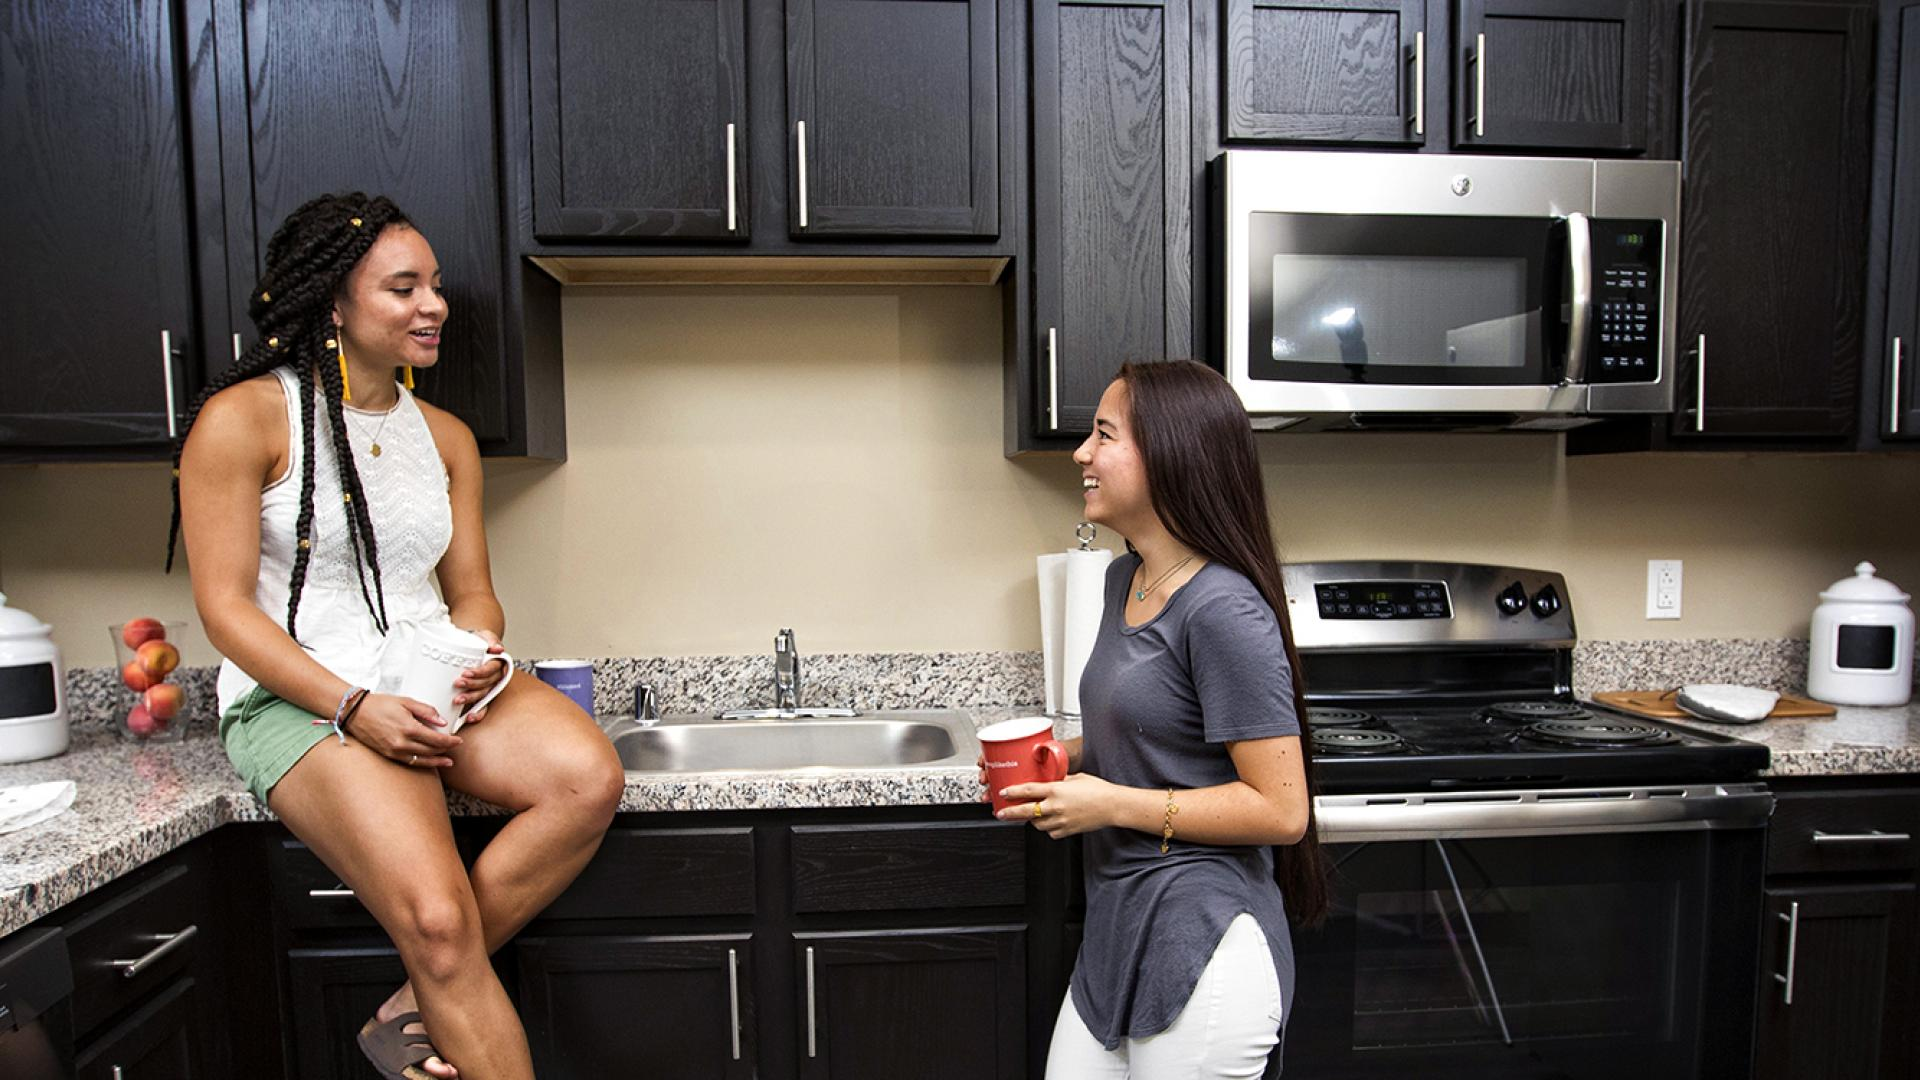 Female Students Talking in the Kitchen of a University Flats Condo